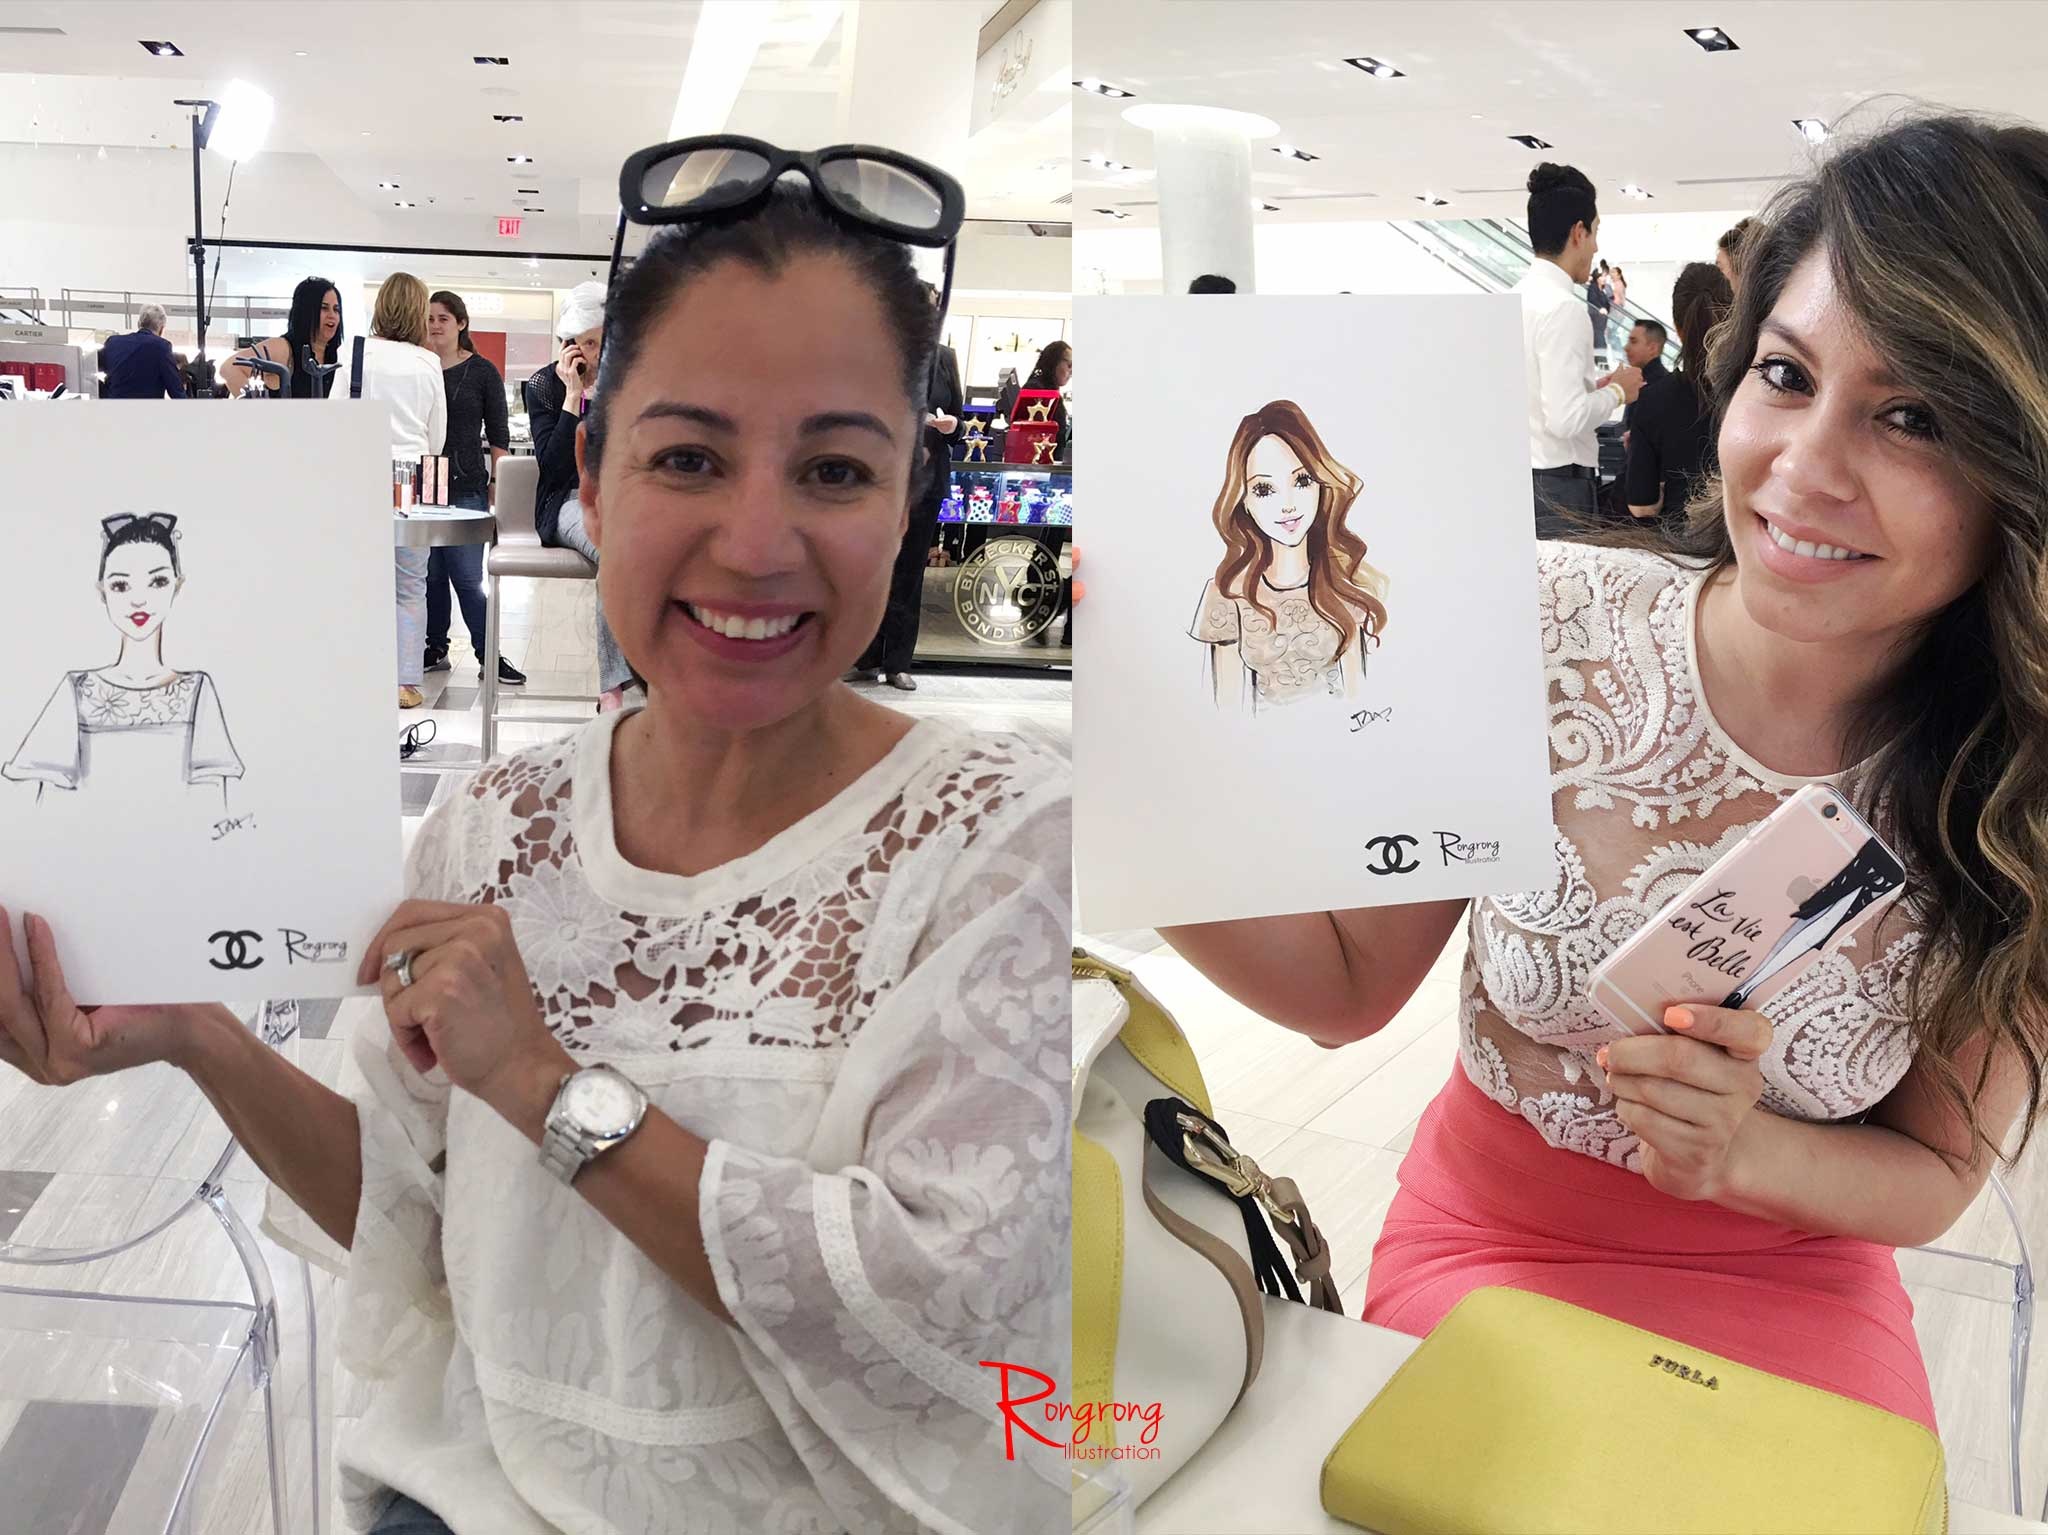 Live-sketching-event-for-Chanel-by-Fashion-Illustrator-Rongrong-DeVoe.jpg